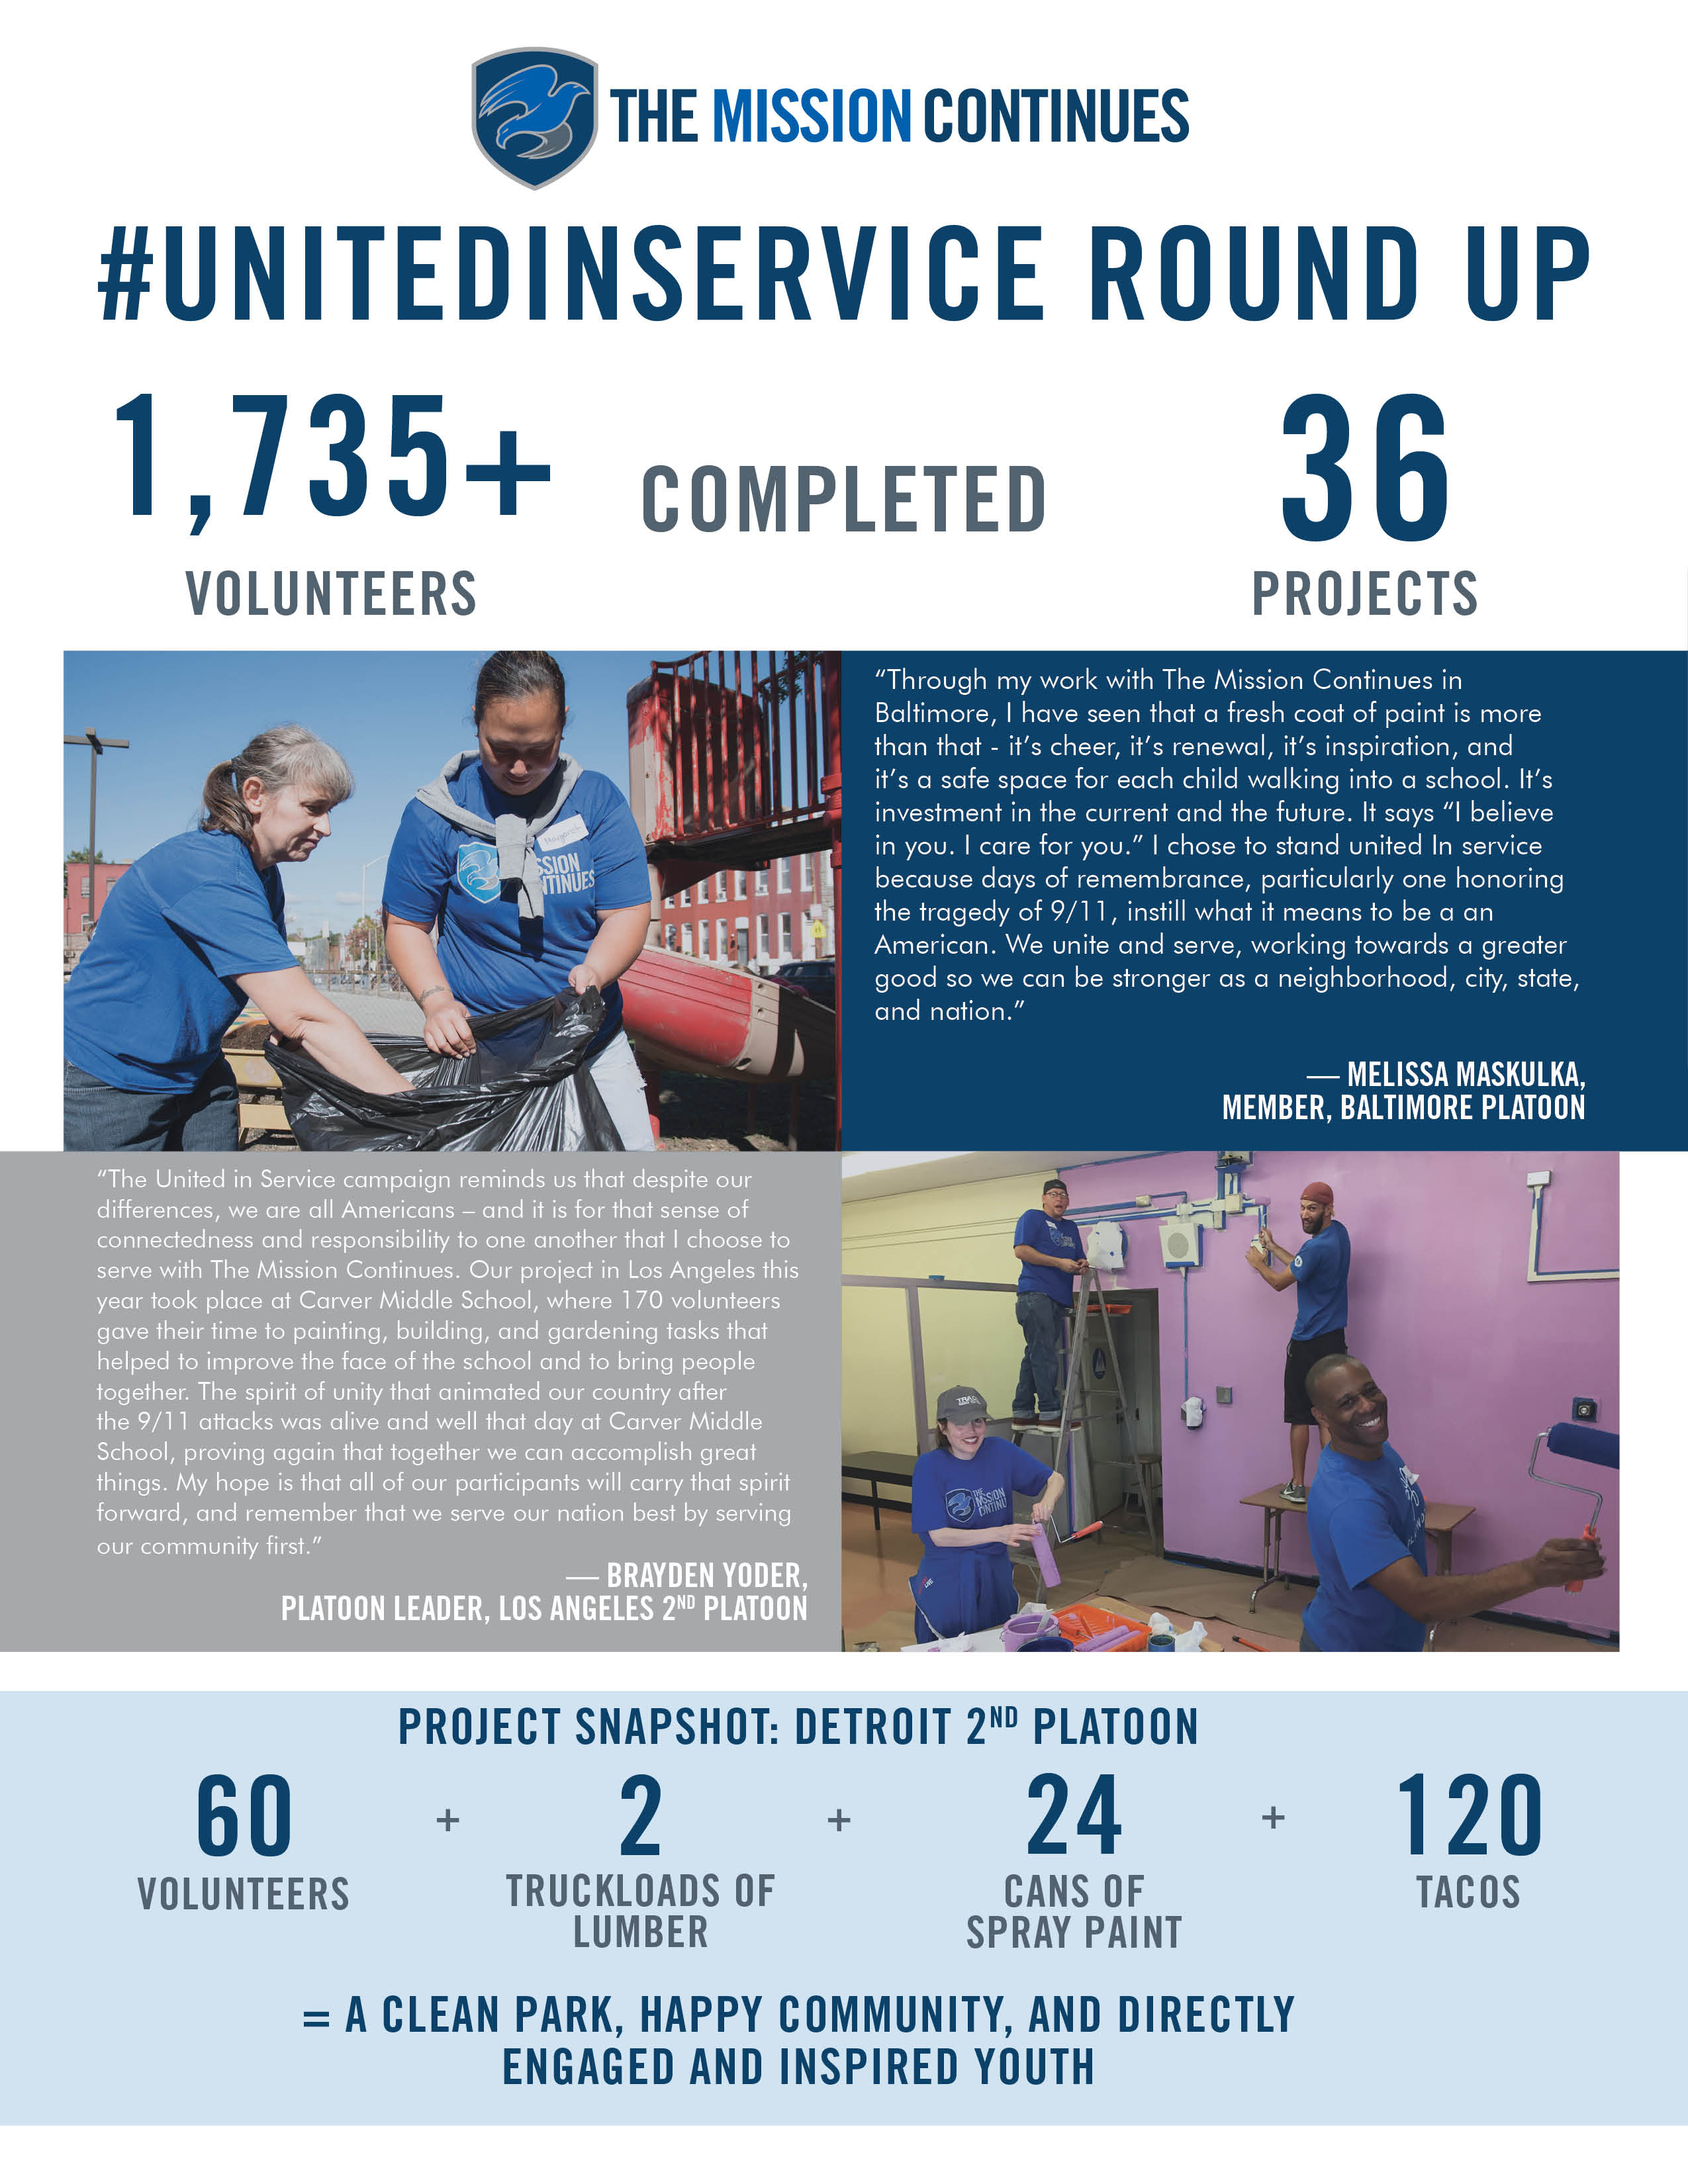 Veterans serve again through The Mission Continues. Here is the impact we made on our 9/11 Day of Service